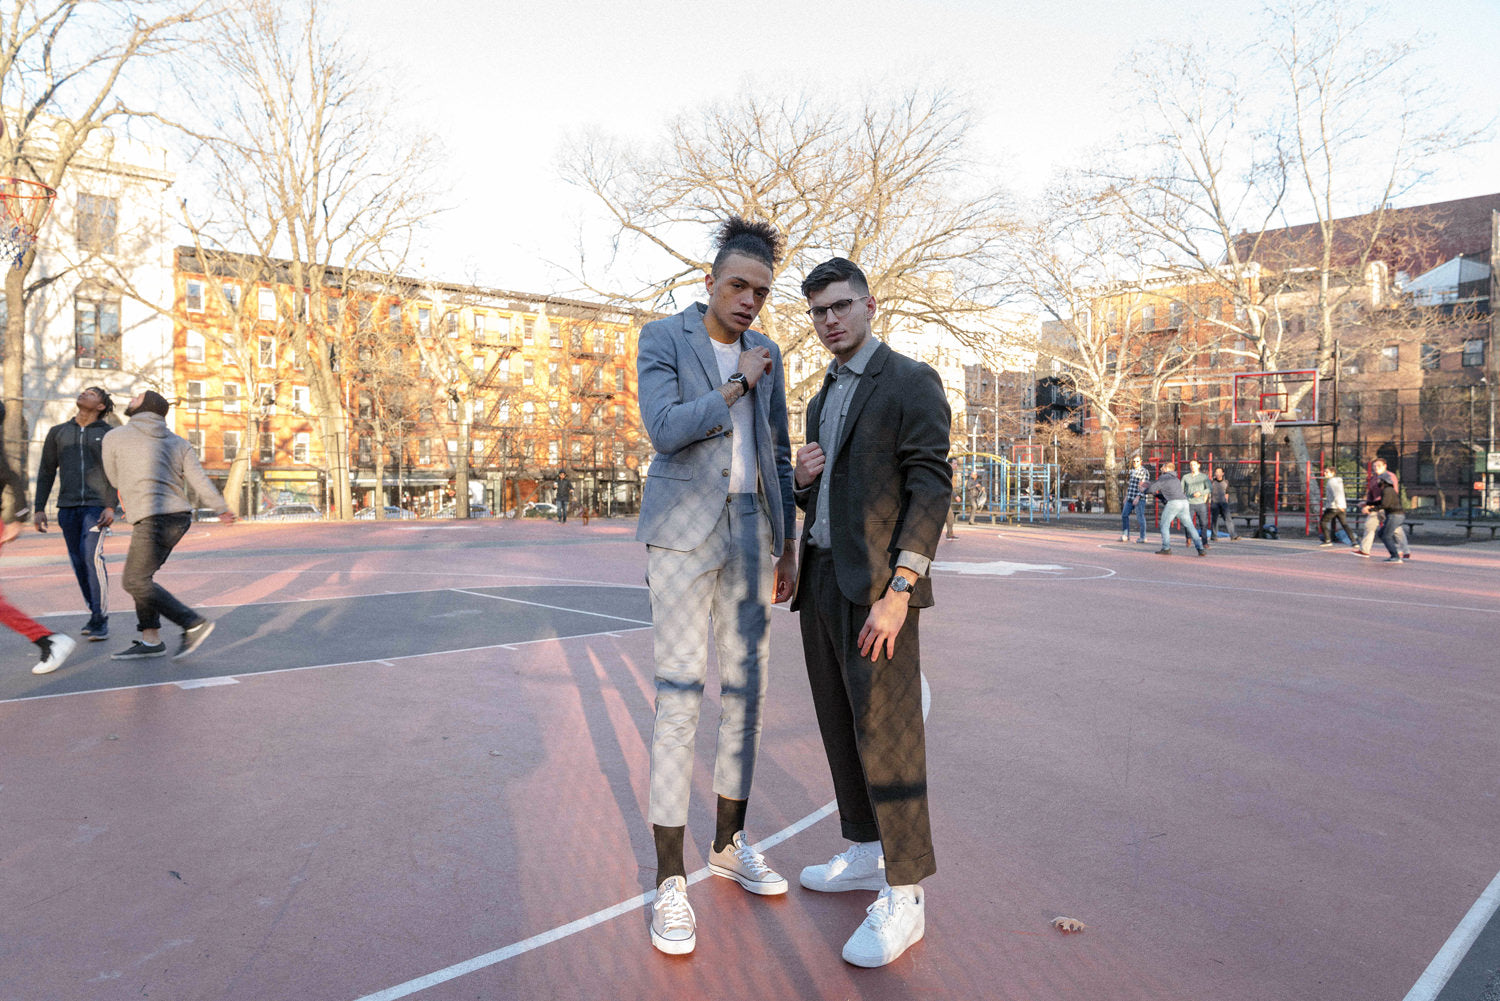 DAEM Spring'19 Lookbook - Men in suits on basketball court